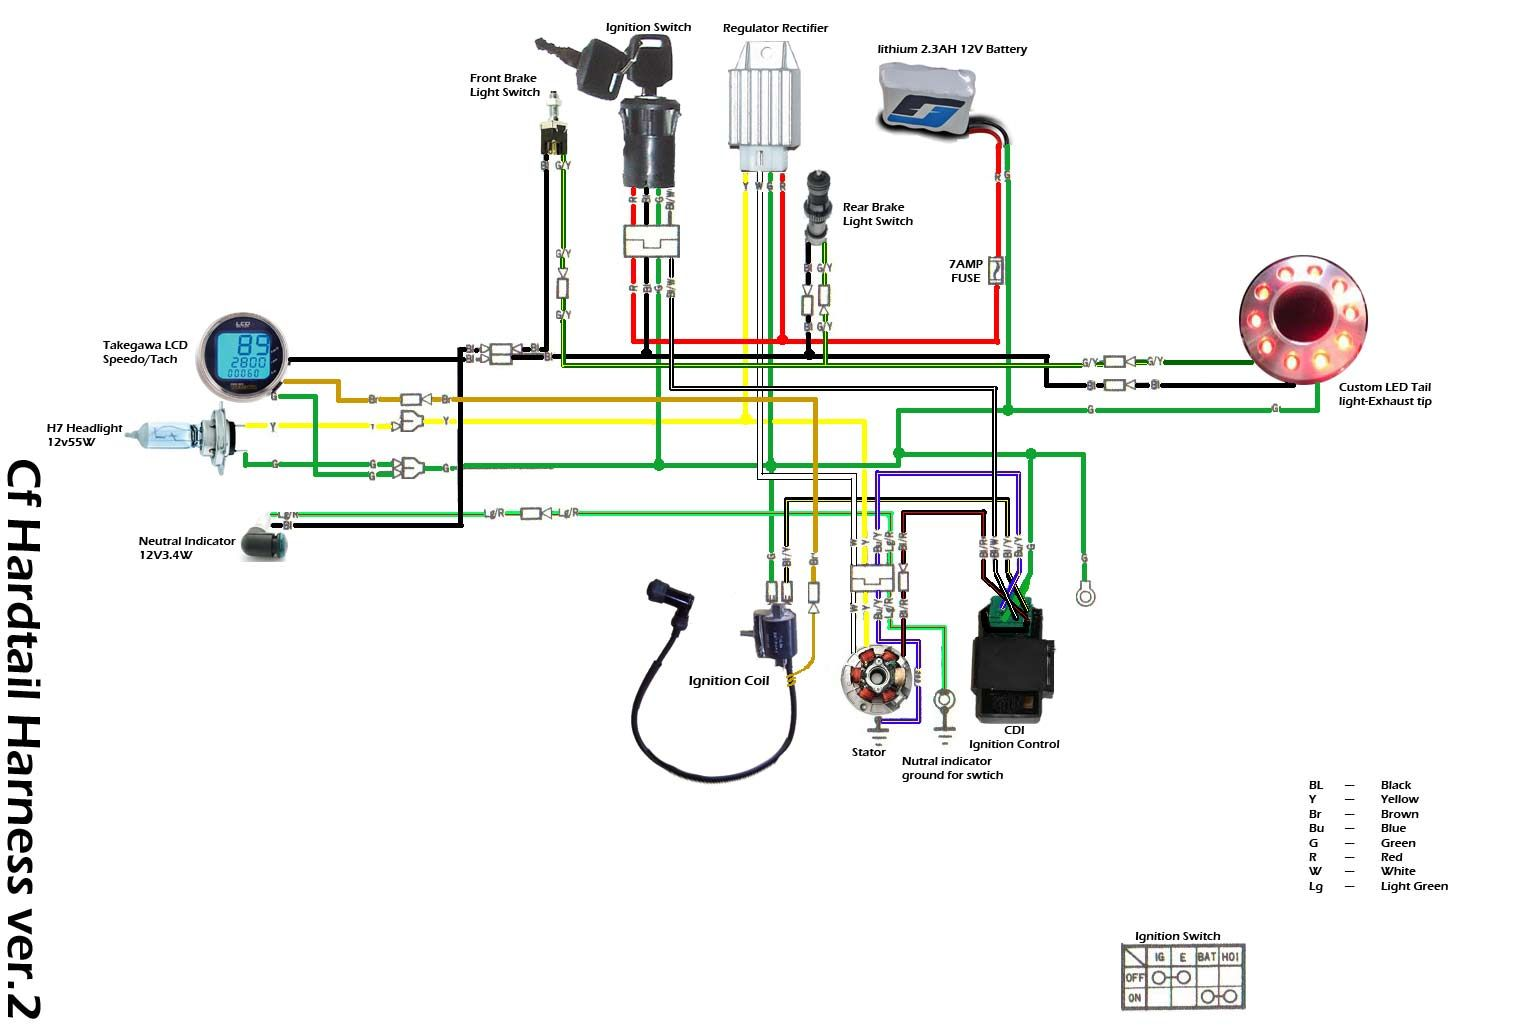 small resolution of wrg 2891 110 wiring diagrambuggy wiring schematic as well as vdo diesel tachometer wiring diagram